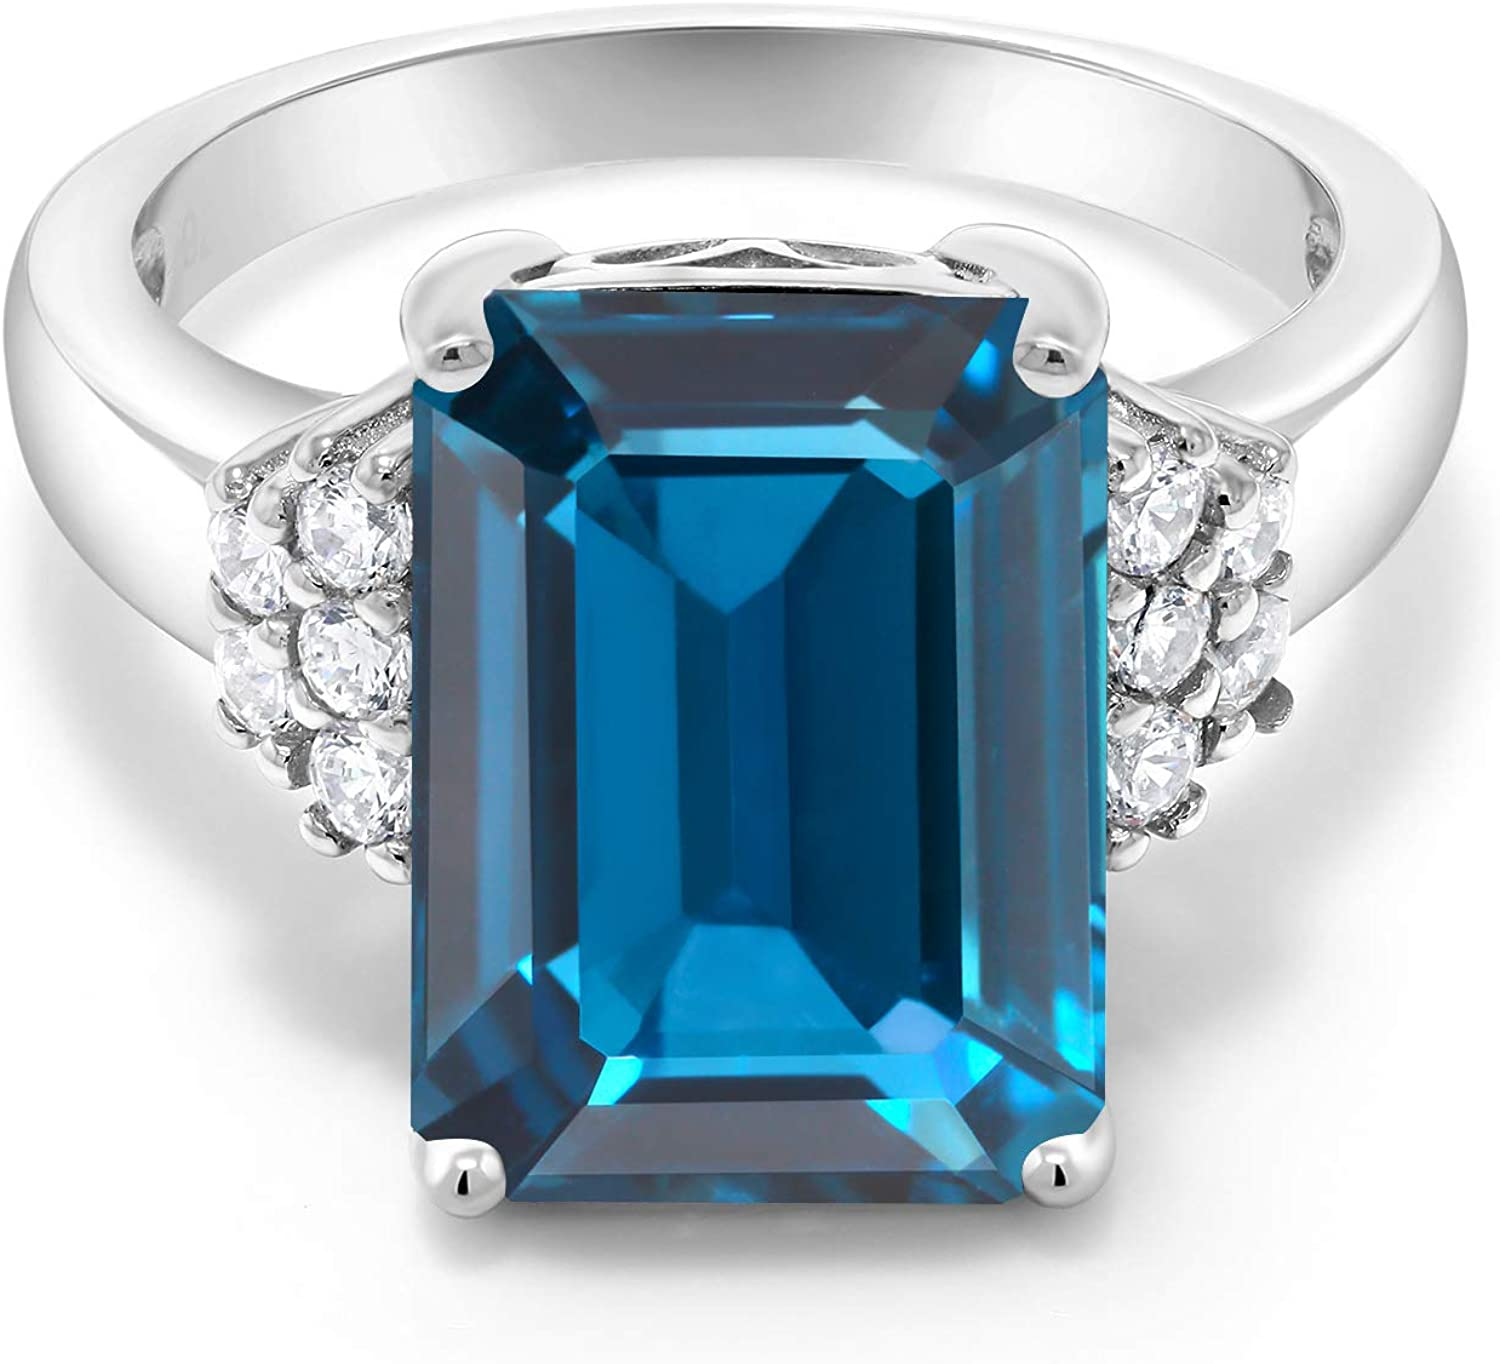 Gem Stone King 925 Sterling Silver London Blue Topaz Women's Engagement Ring 8.80 Ct Emerald Cut 14X10MM Gemstone Birthstone Available in size 5, 6, 7, 8,